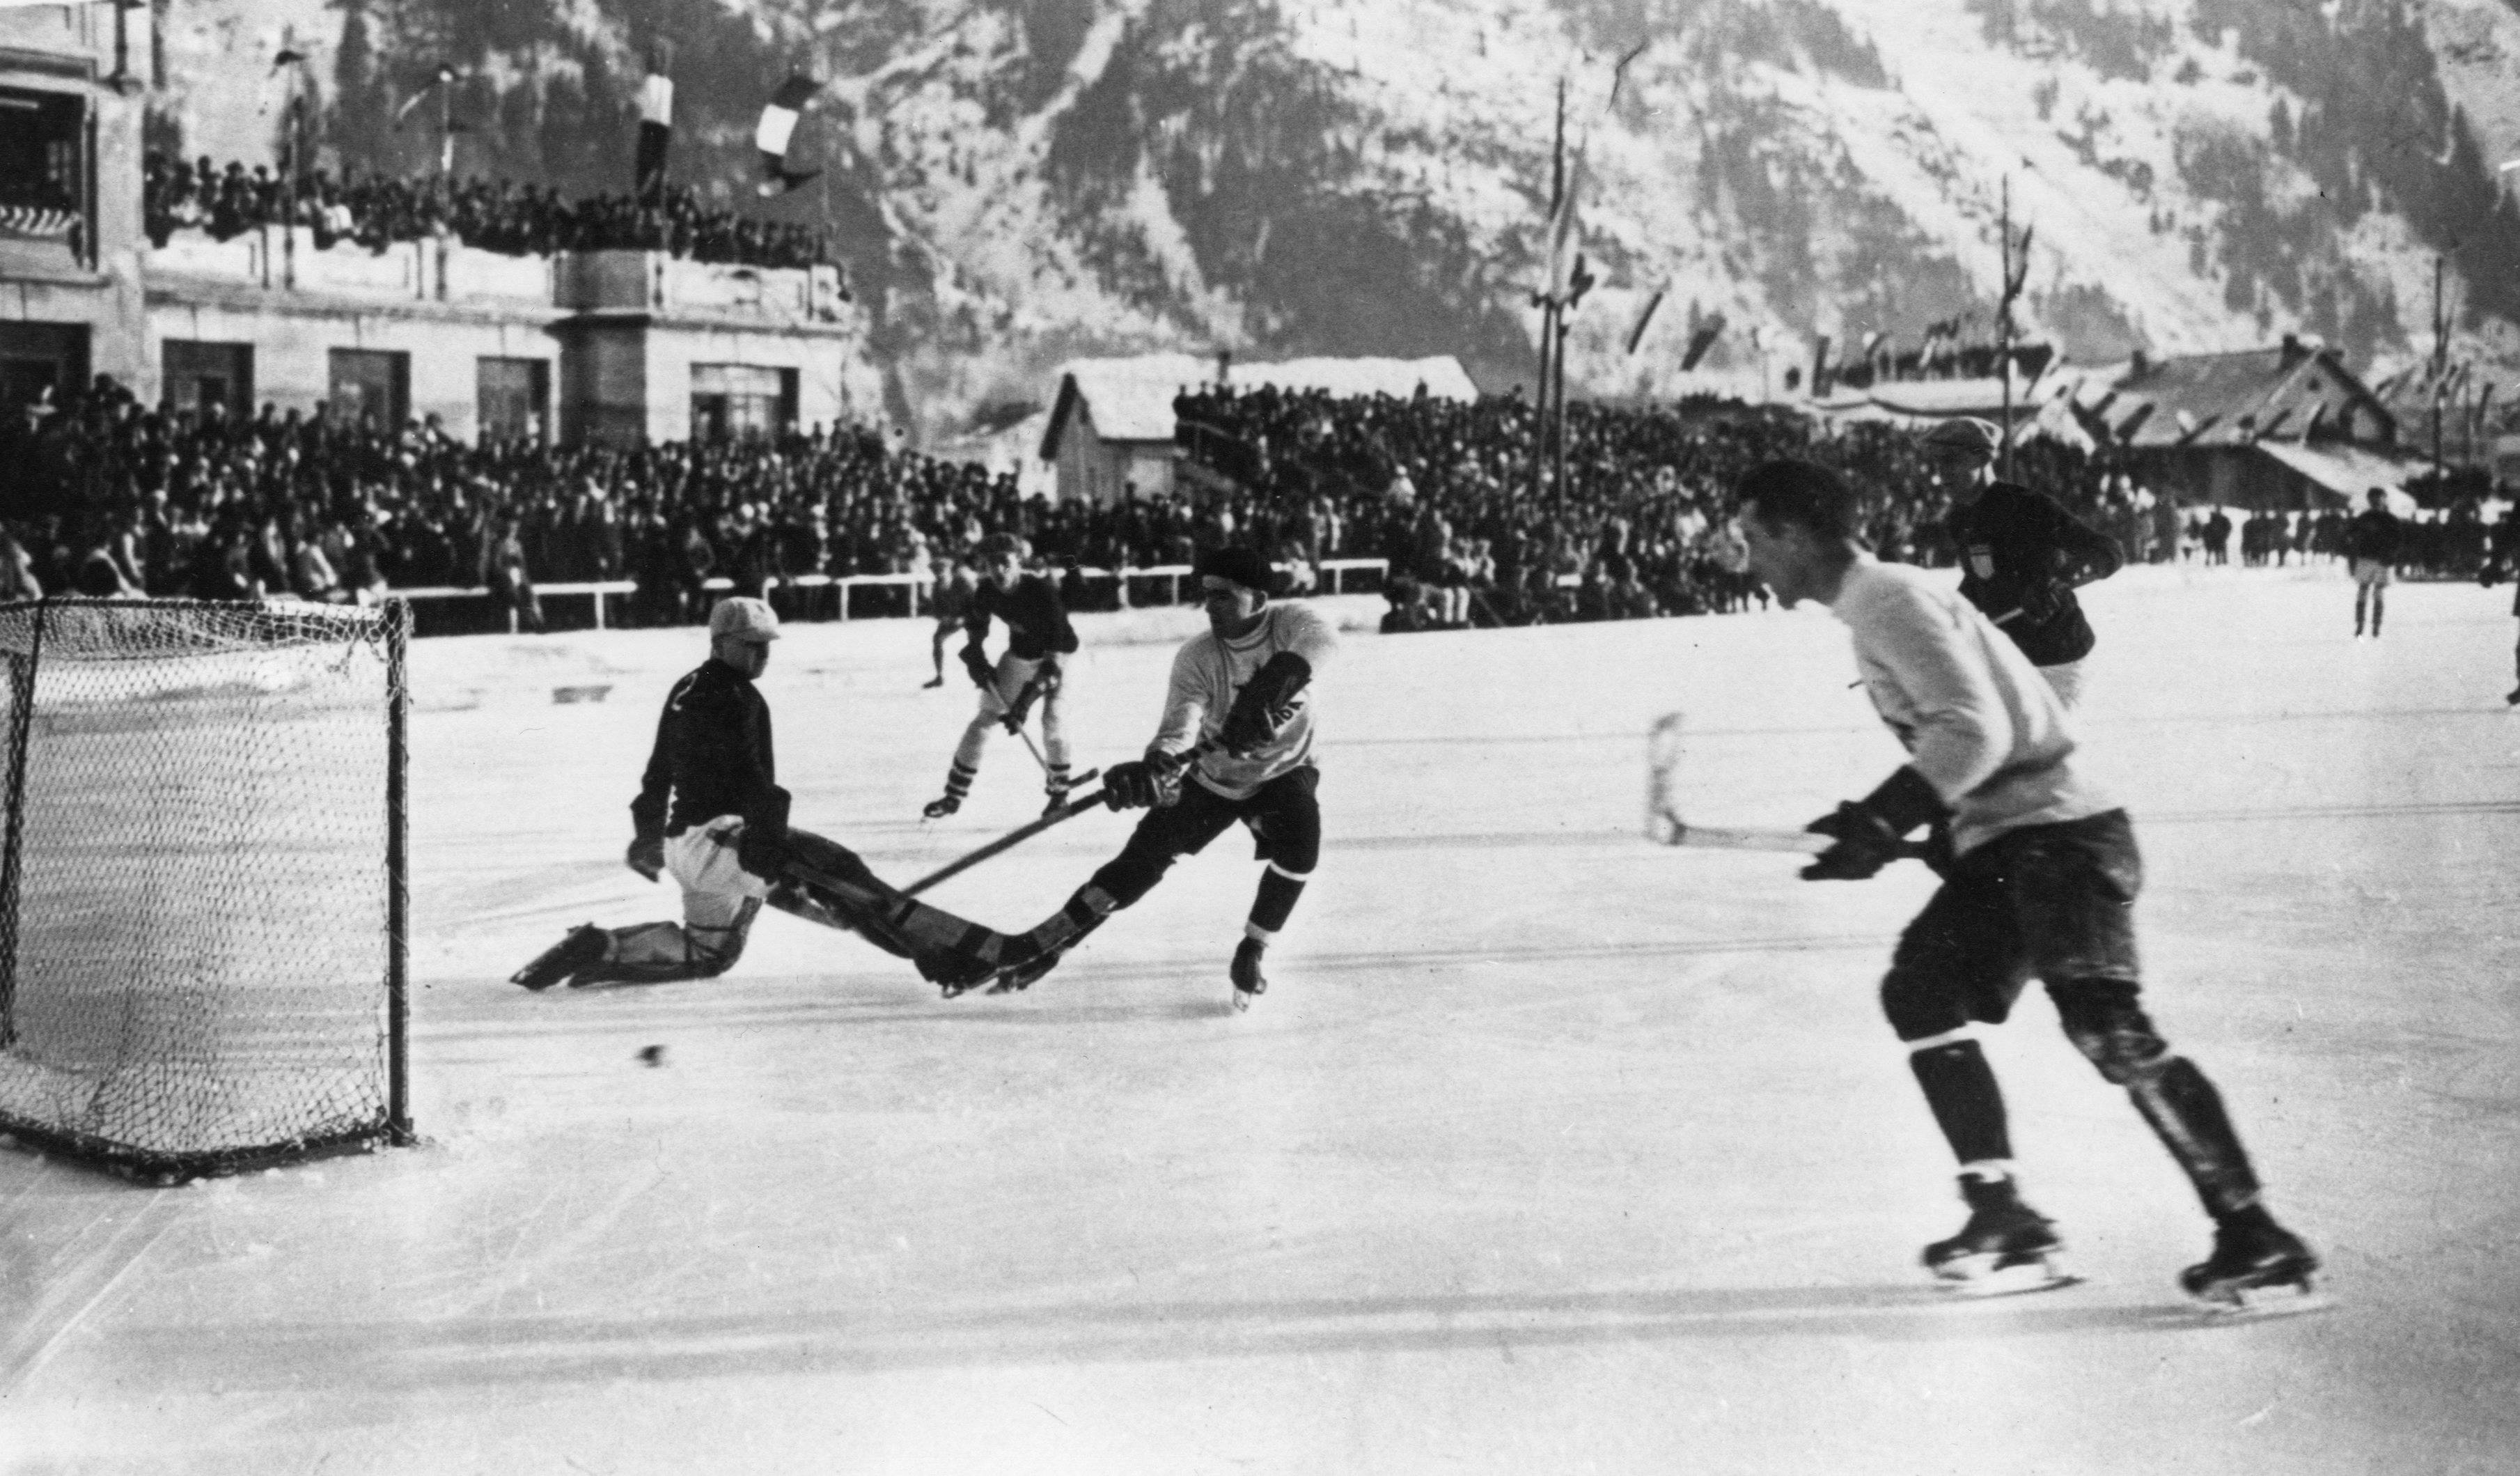 Canada Amp Usa In Gold Medal Game Action 1924 Winter